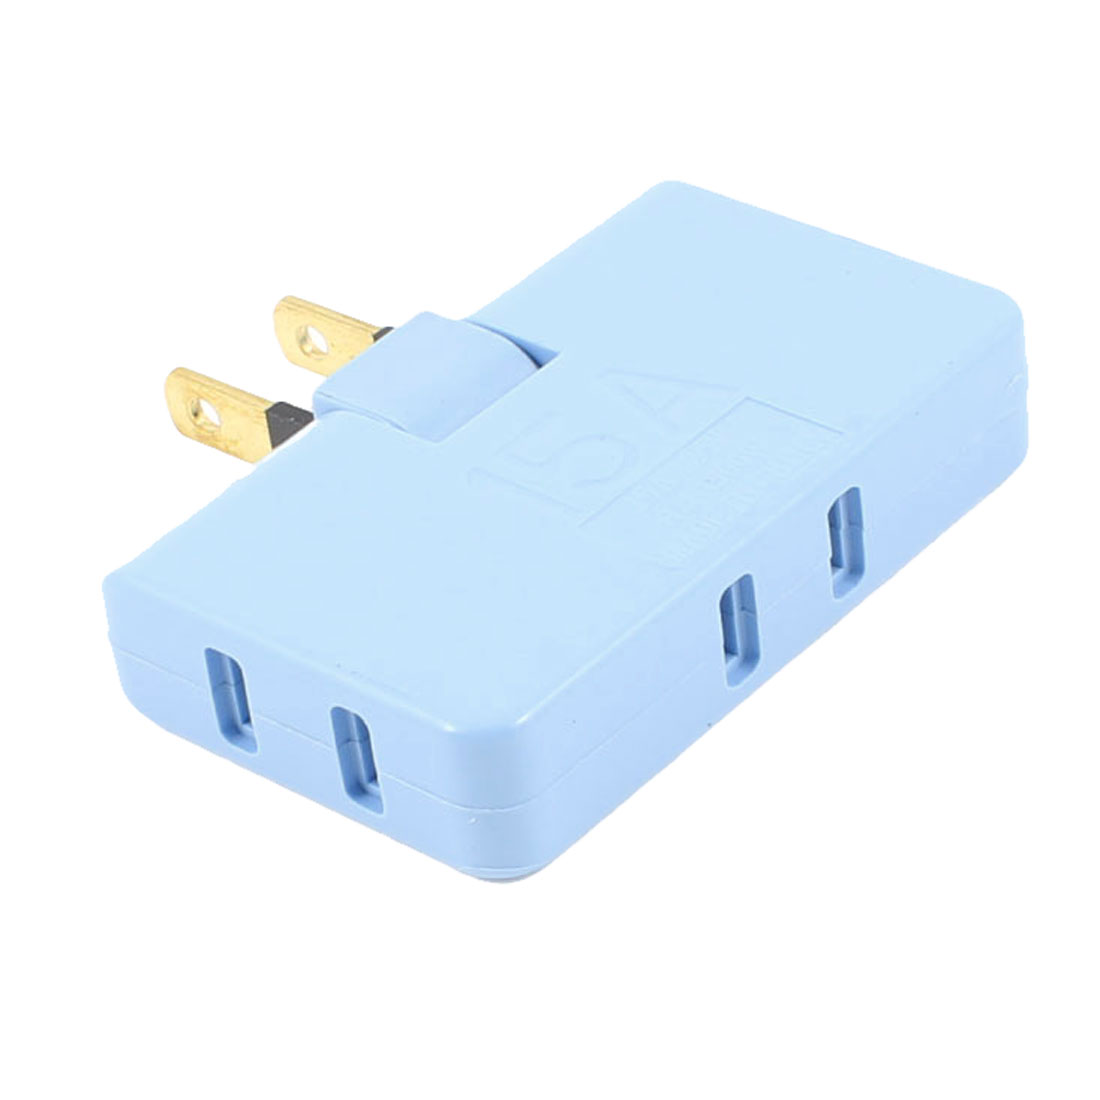 Blue Plastic Rotation Triporate Power Plug Socket US AC 125V 15A 1500W